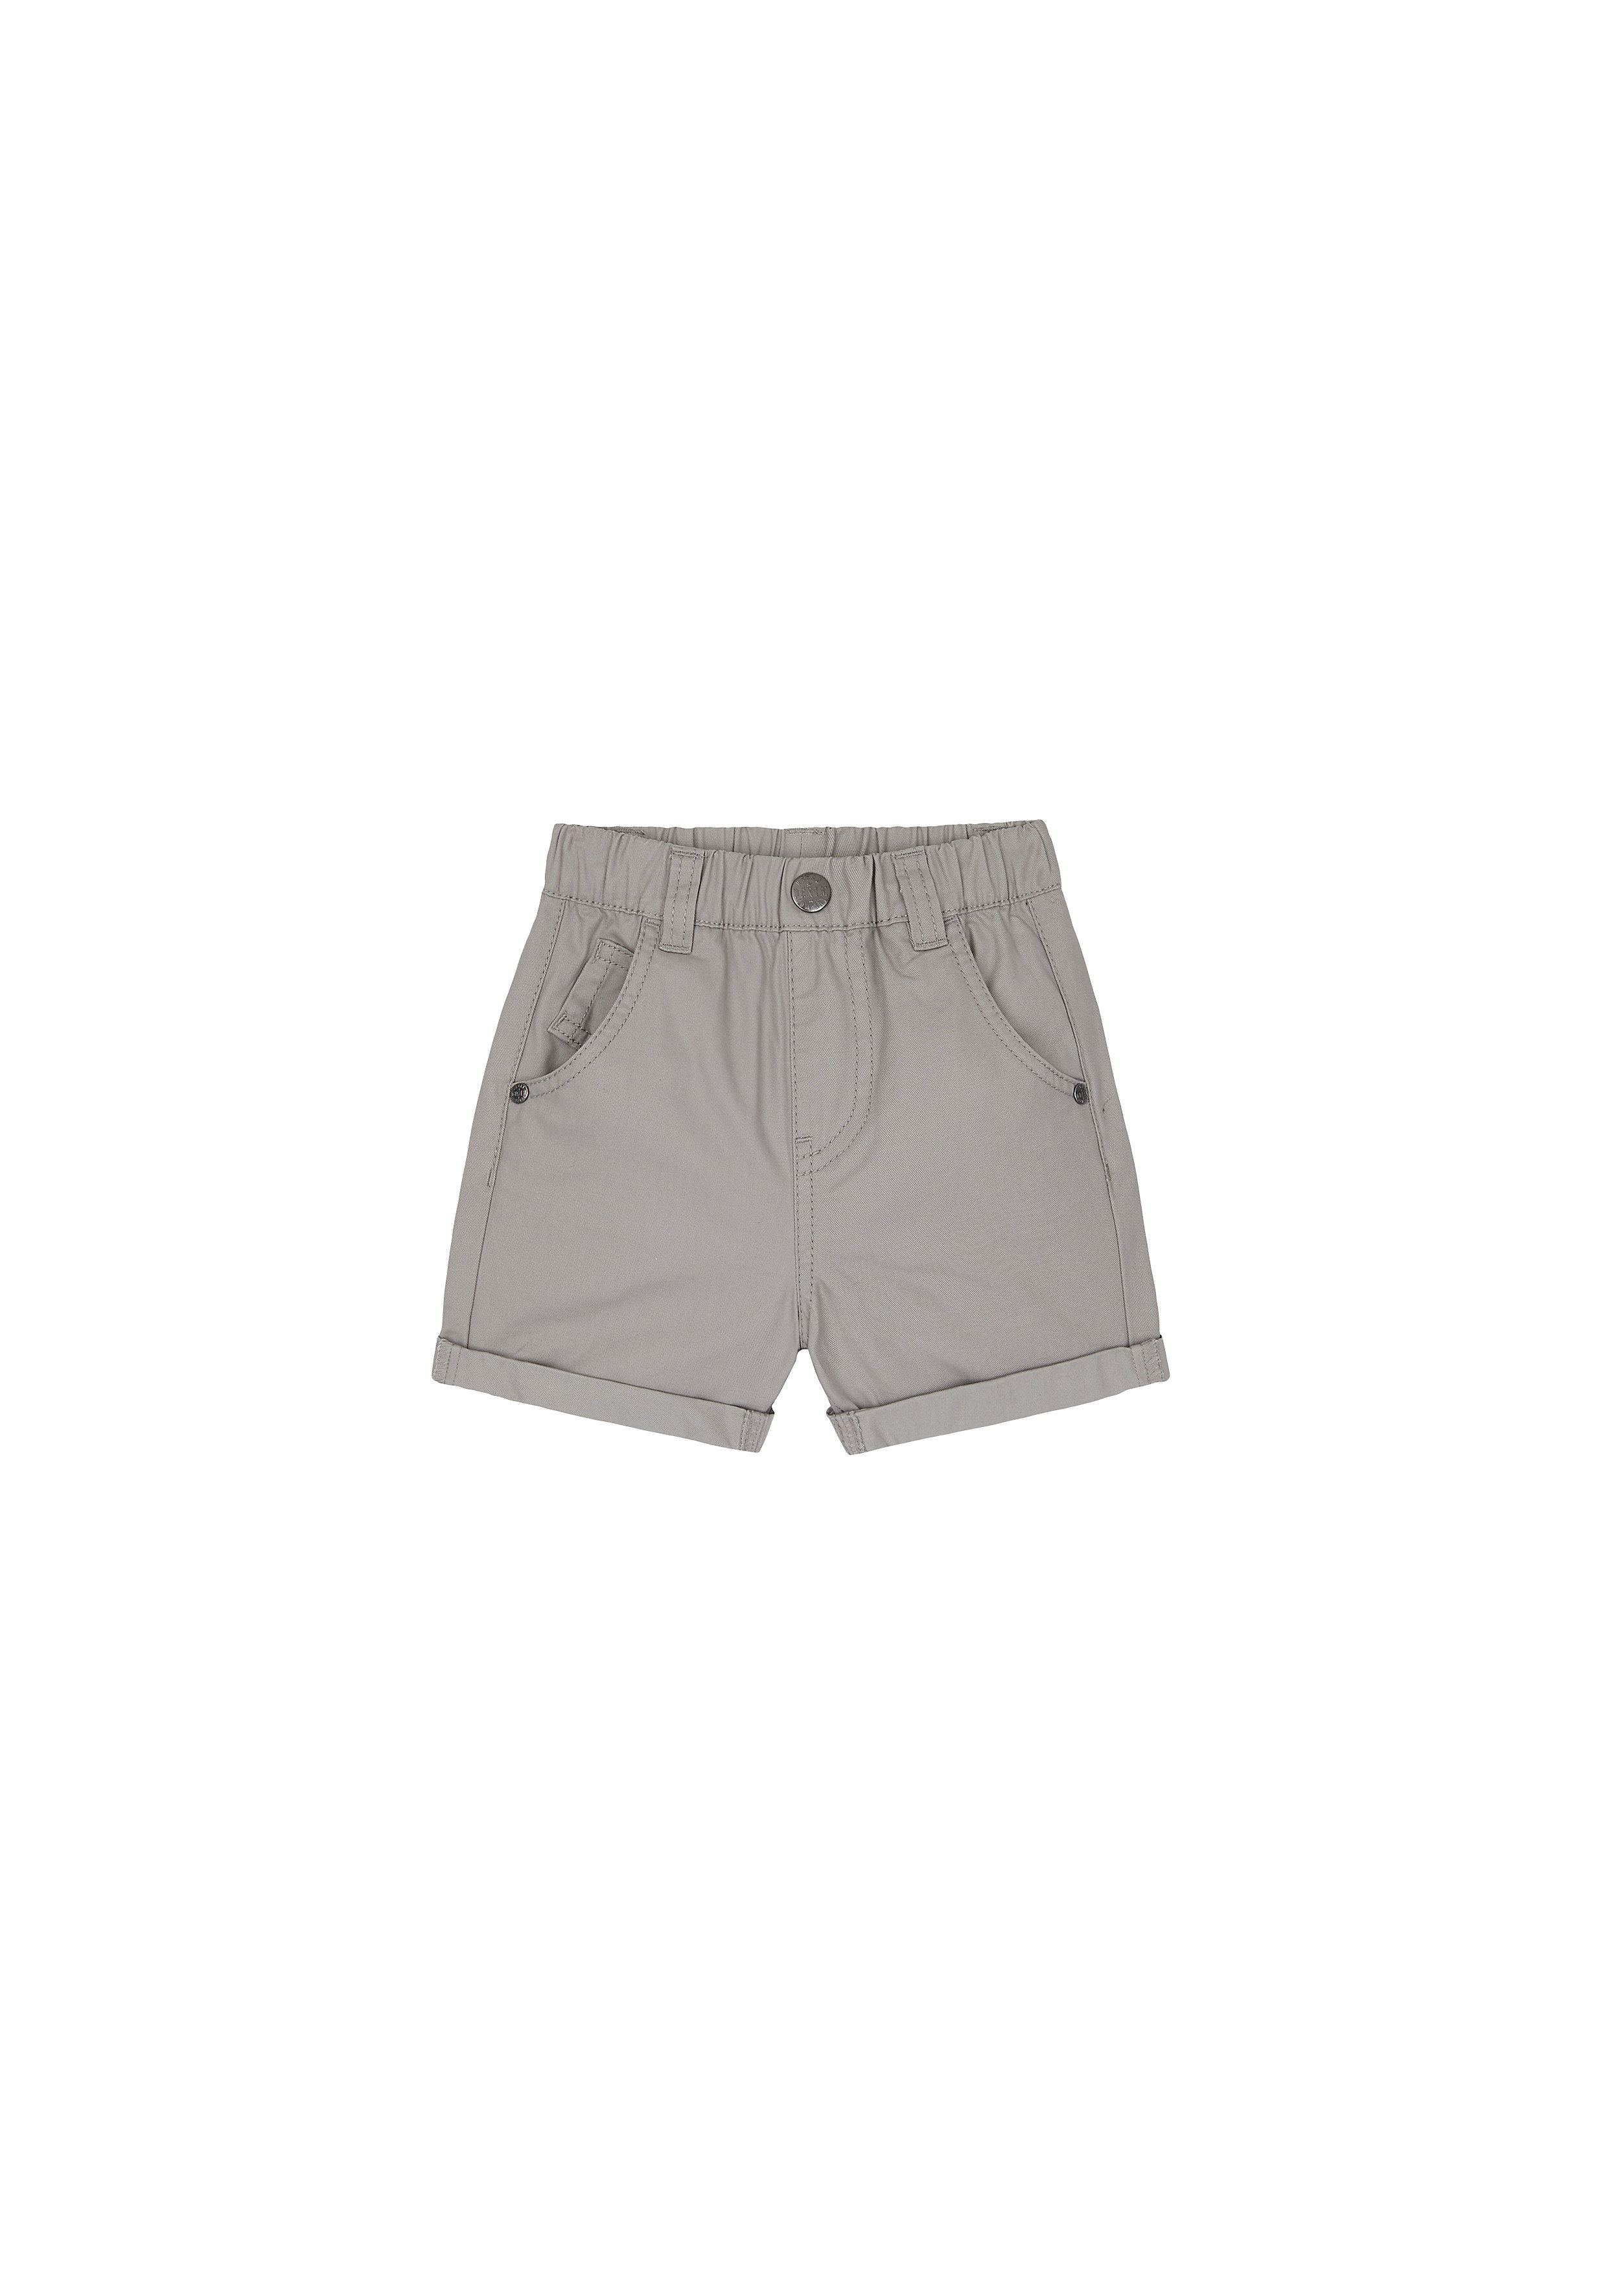 Mothercare | Boys Shorts Embroidered - Grey